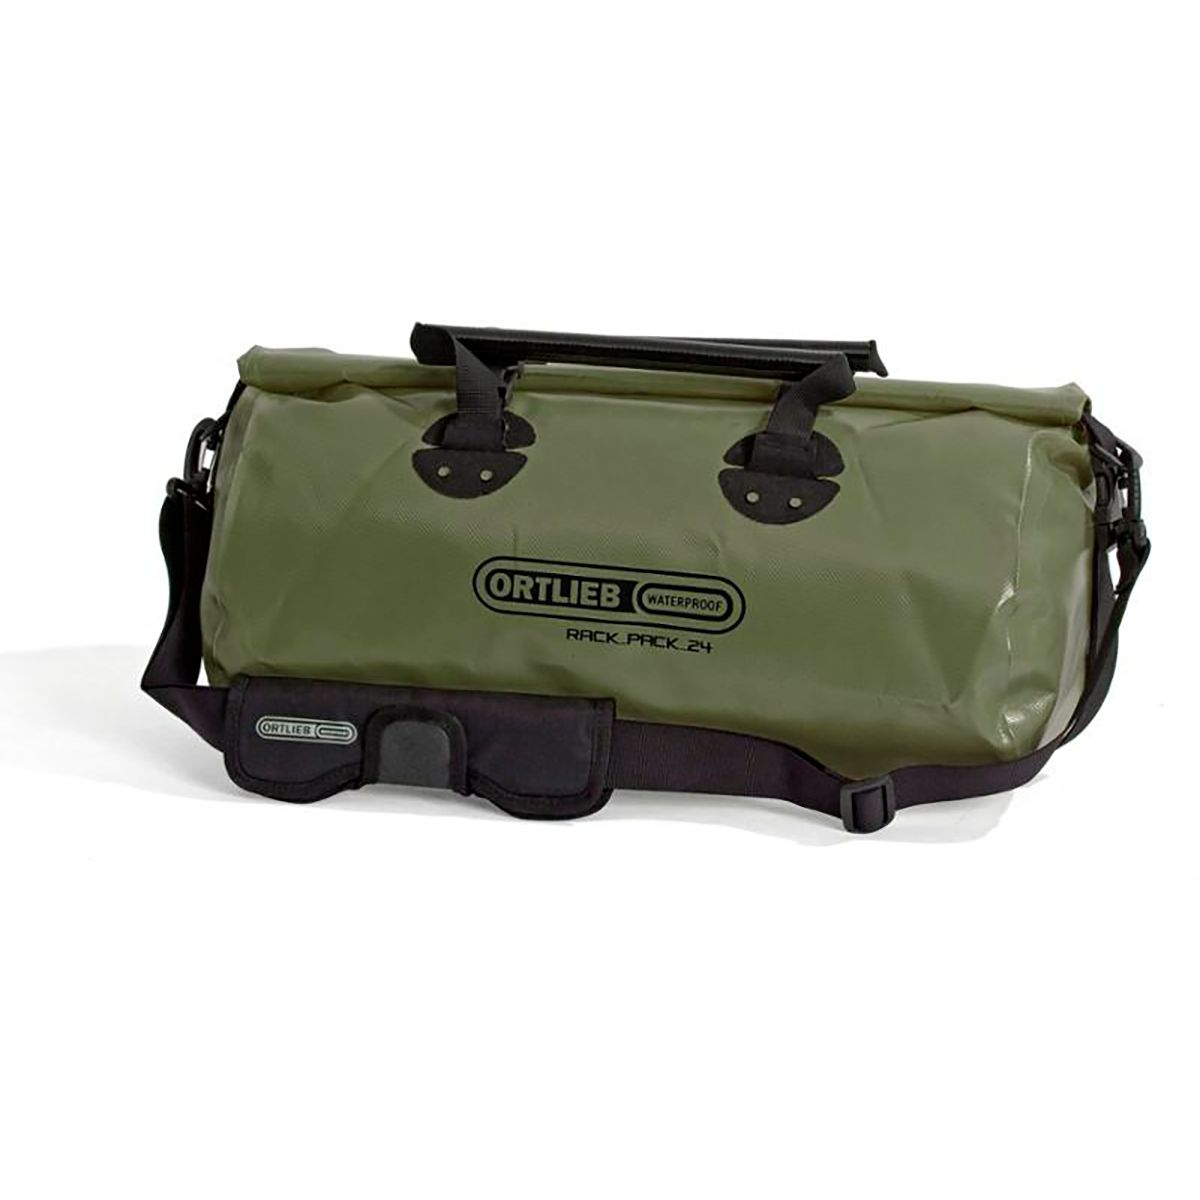 S 24 l Rack-Pack travel and sports bag